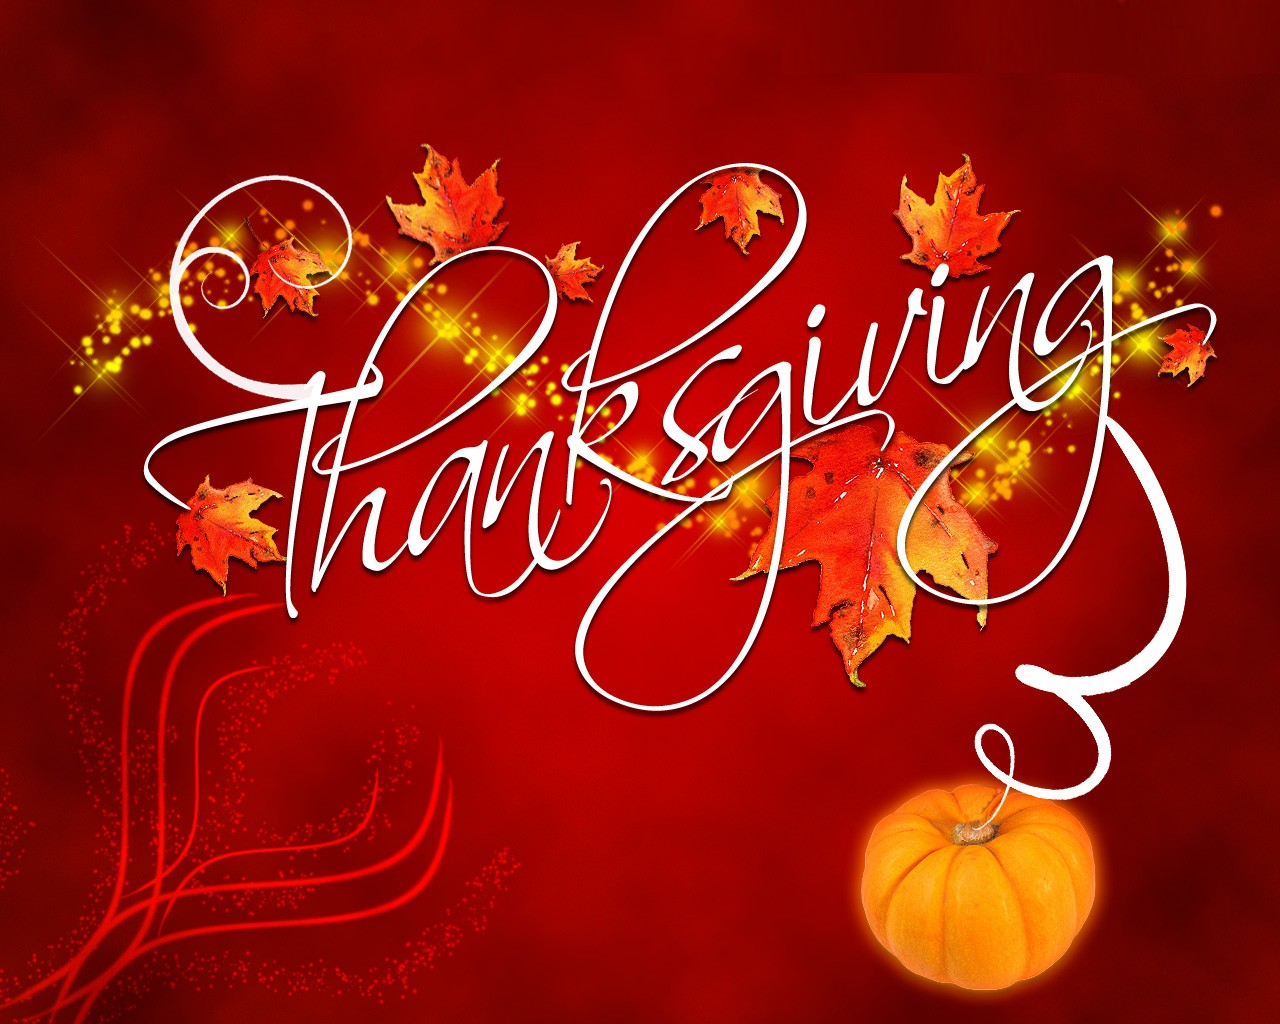 Thanksgiving day wallpapers - Thanksgiving computer wallpaper ...